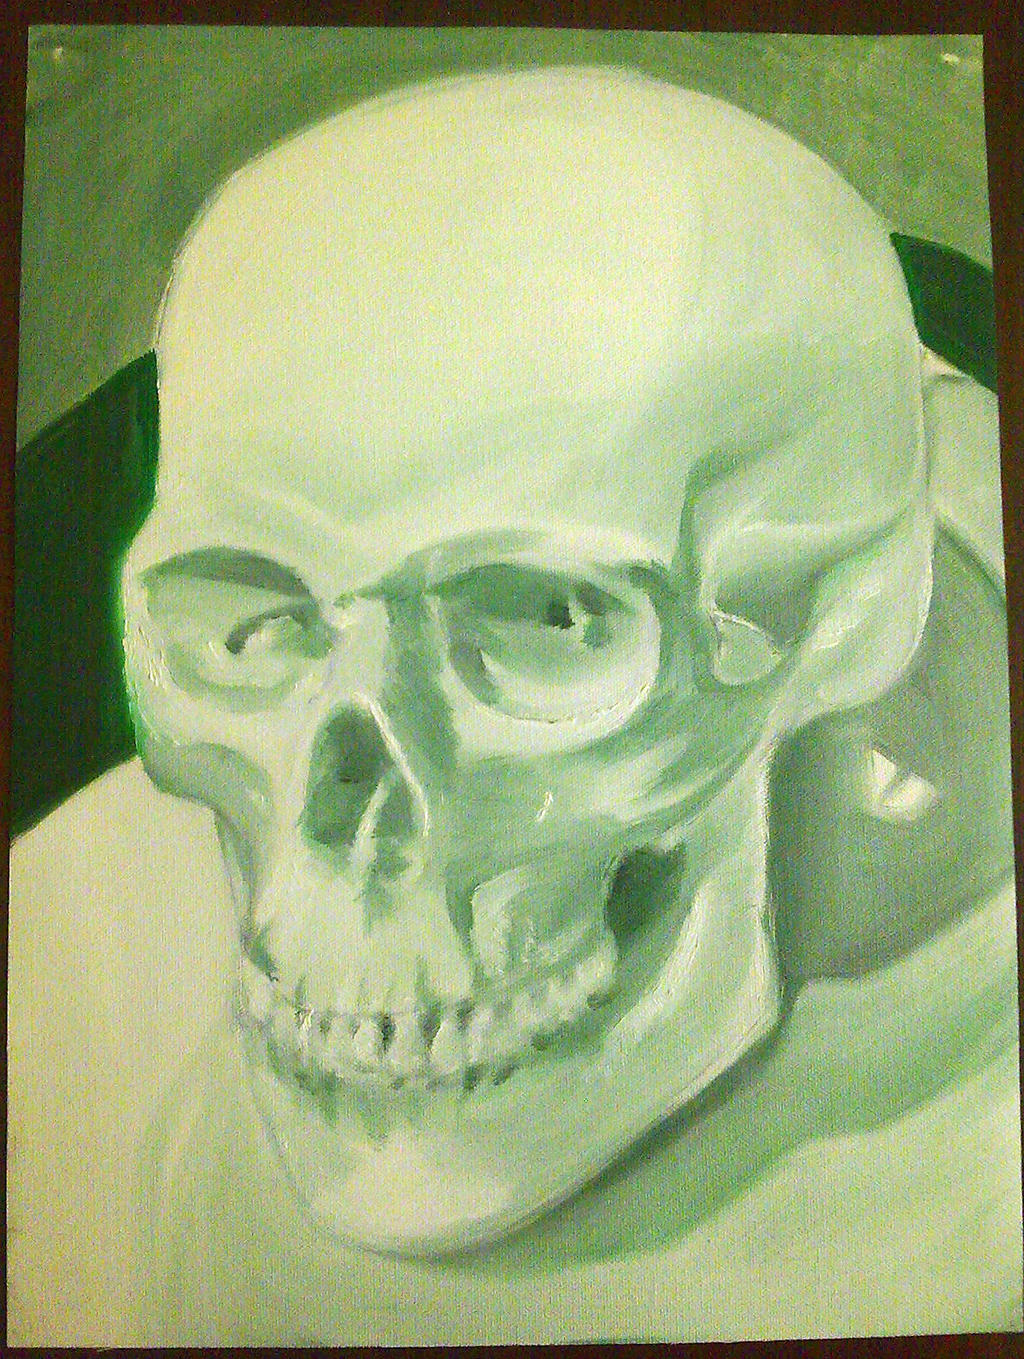 Green Skull by Aetherya